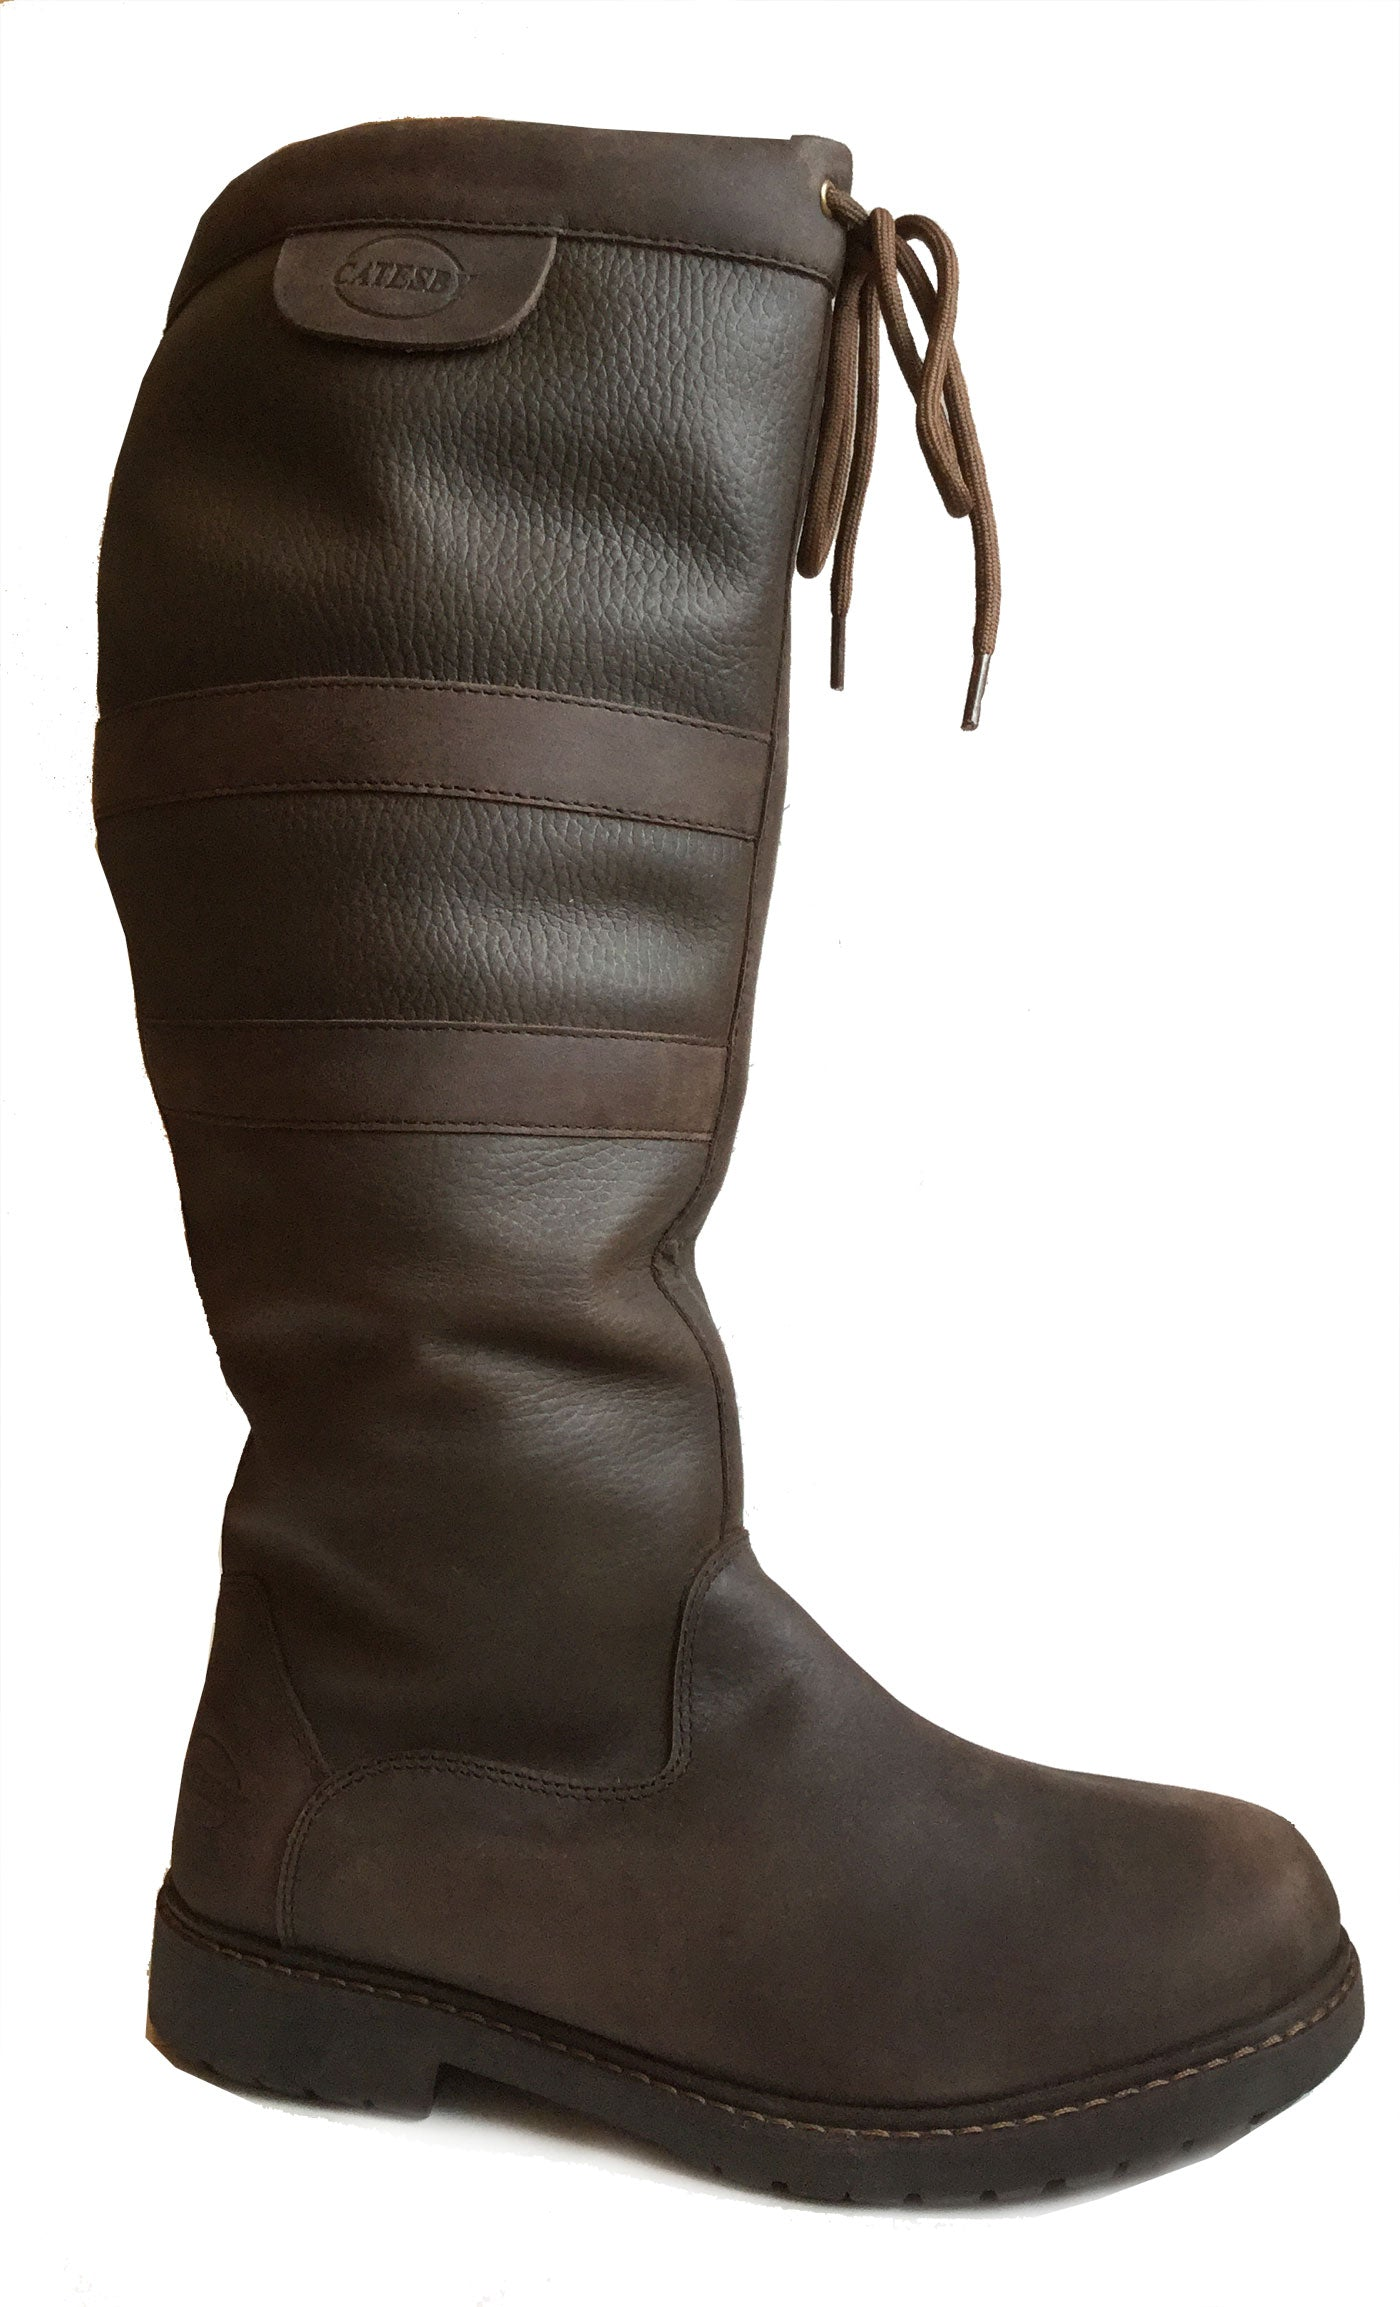 4bec4f87ca8 Catesby Stratford II Comfort Fit Leather Country Boot – Hollands ...